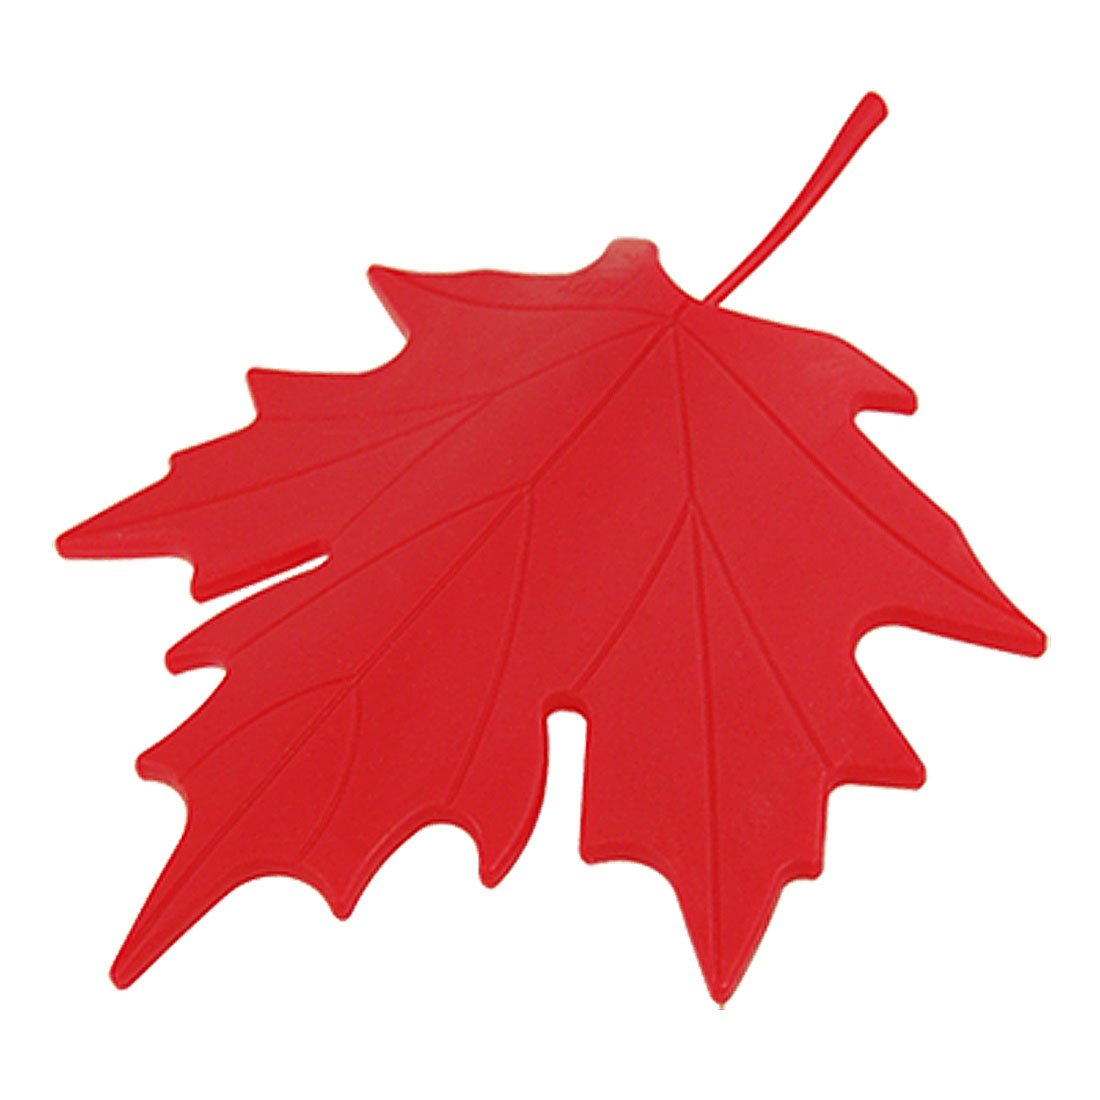 uxcell Red Plastic Maple Leaf Style Home Decorative Door Stopper Doorstop